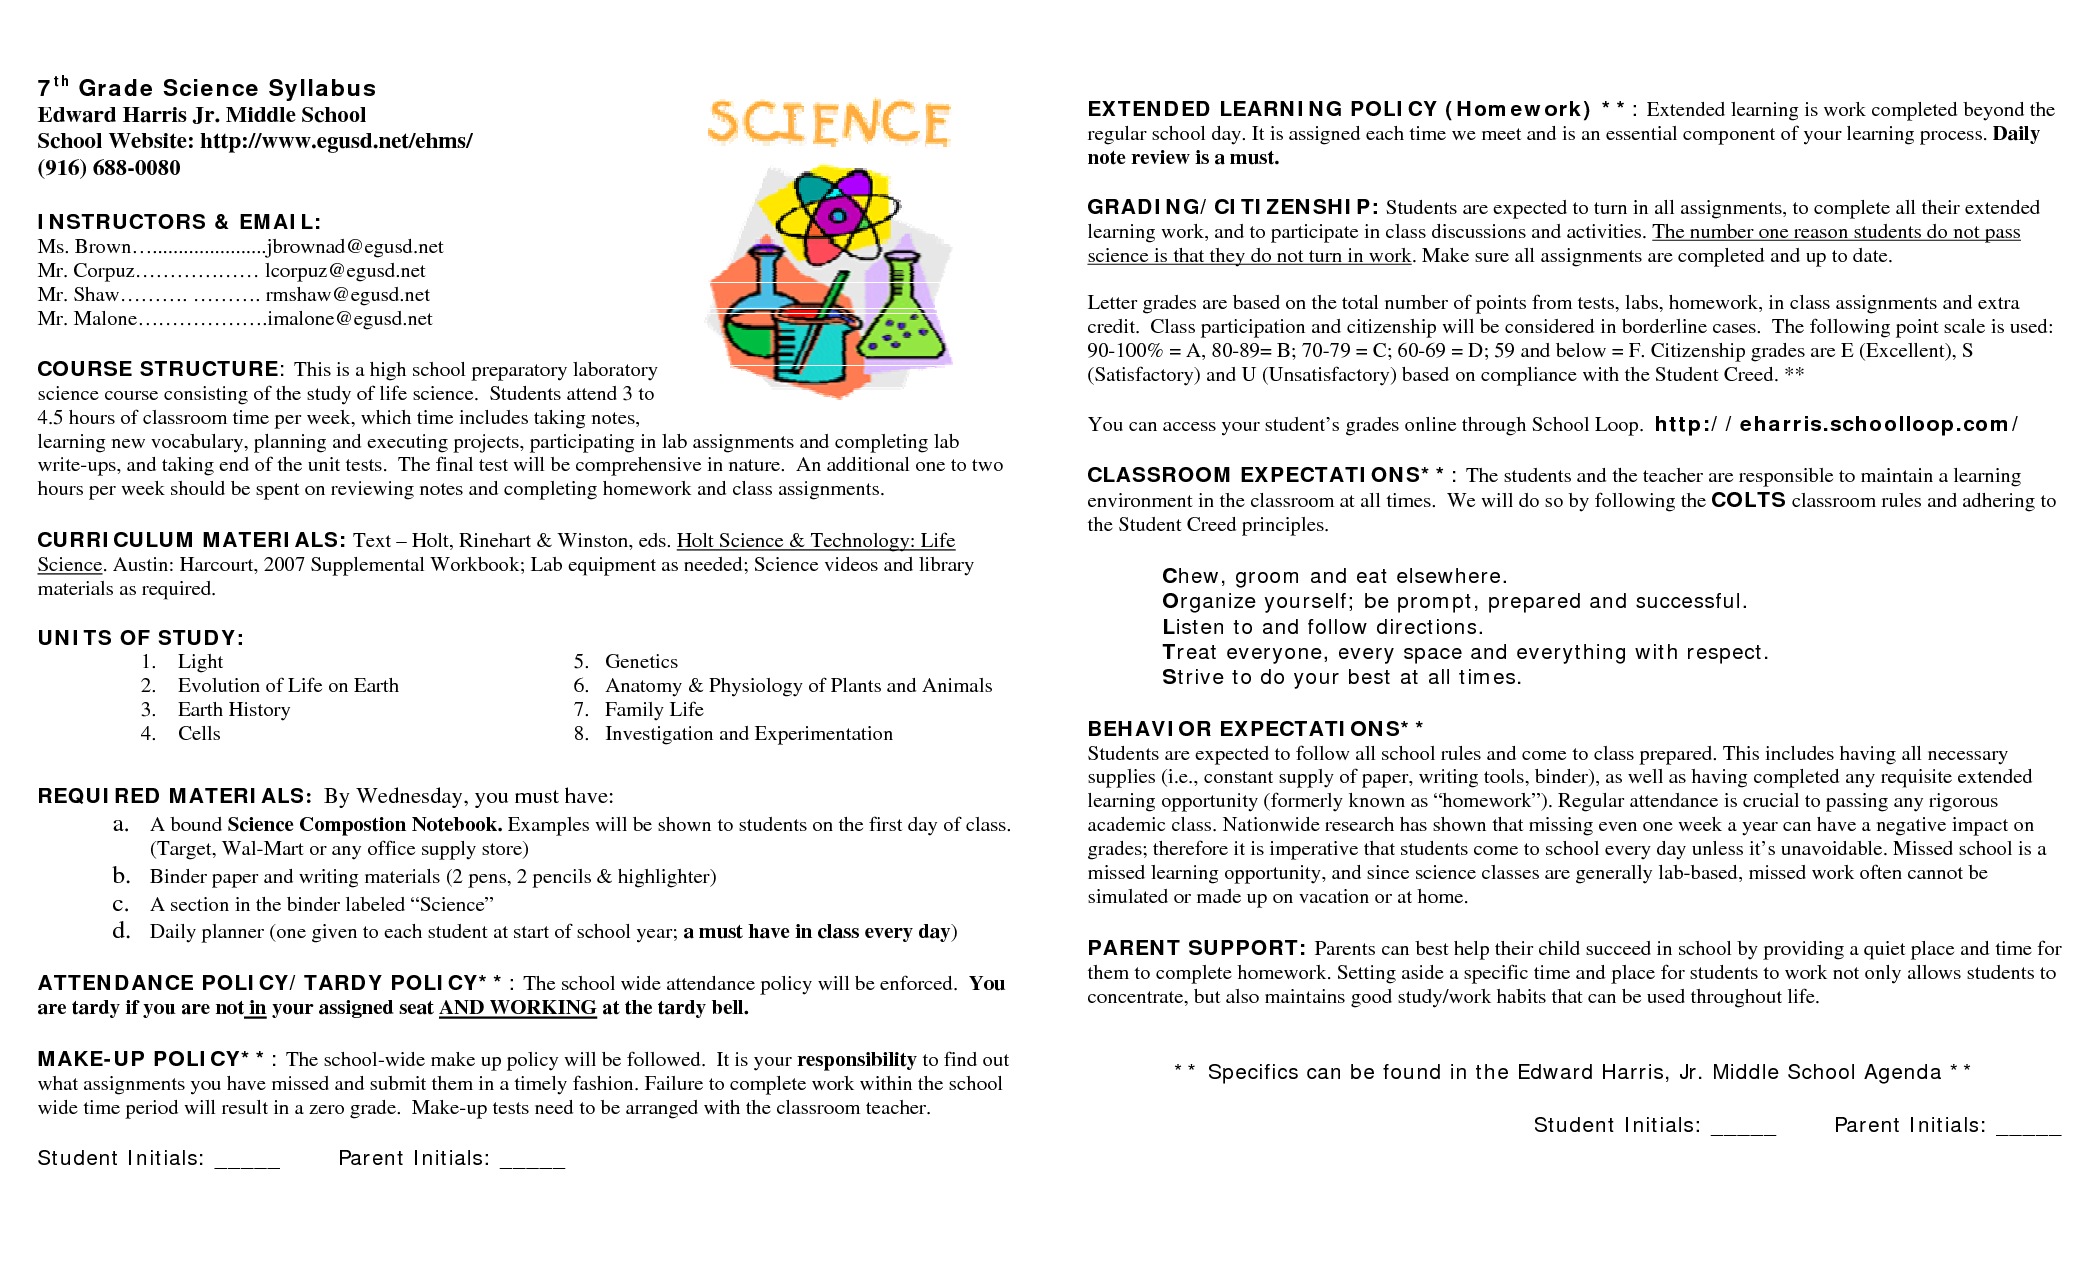 15 Awesome Syllabus Template For Middle School Images Pertaining To Blank Syllabus Template